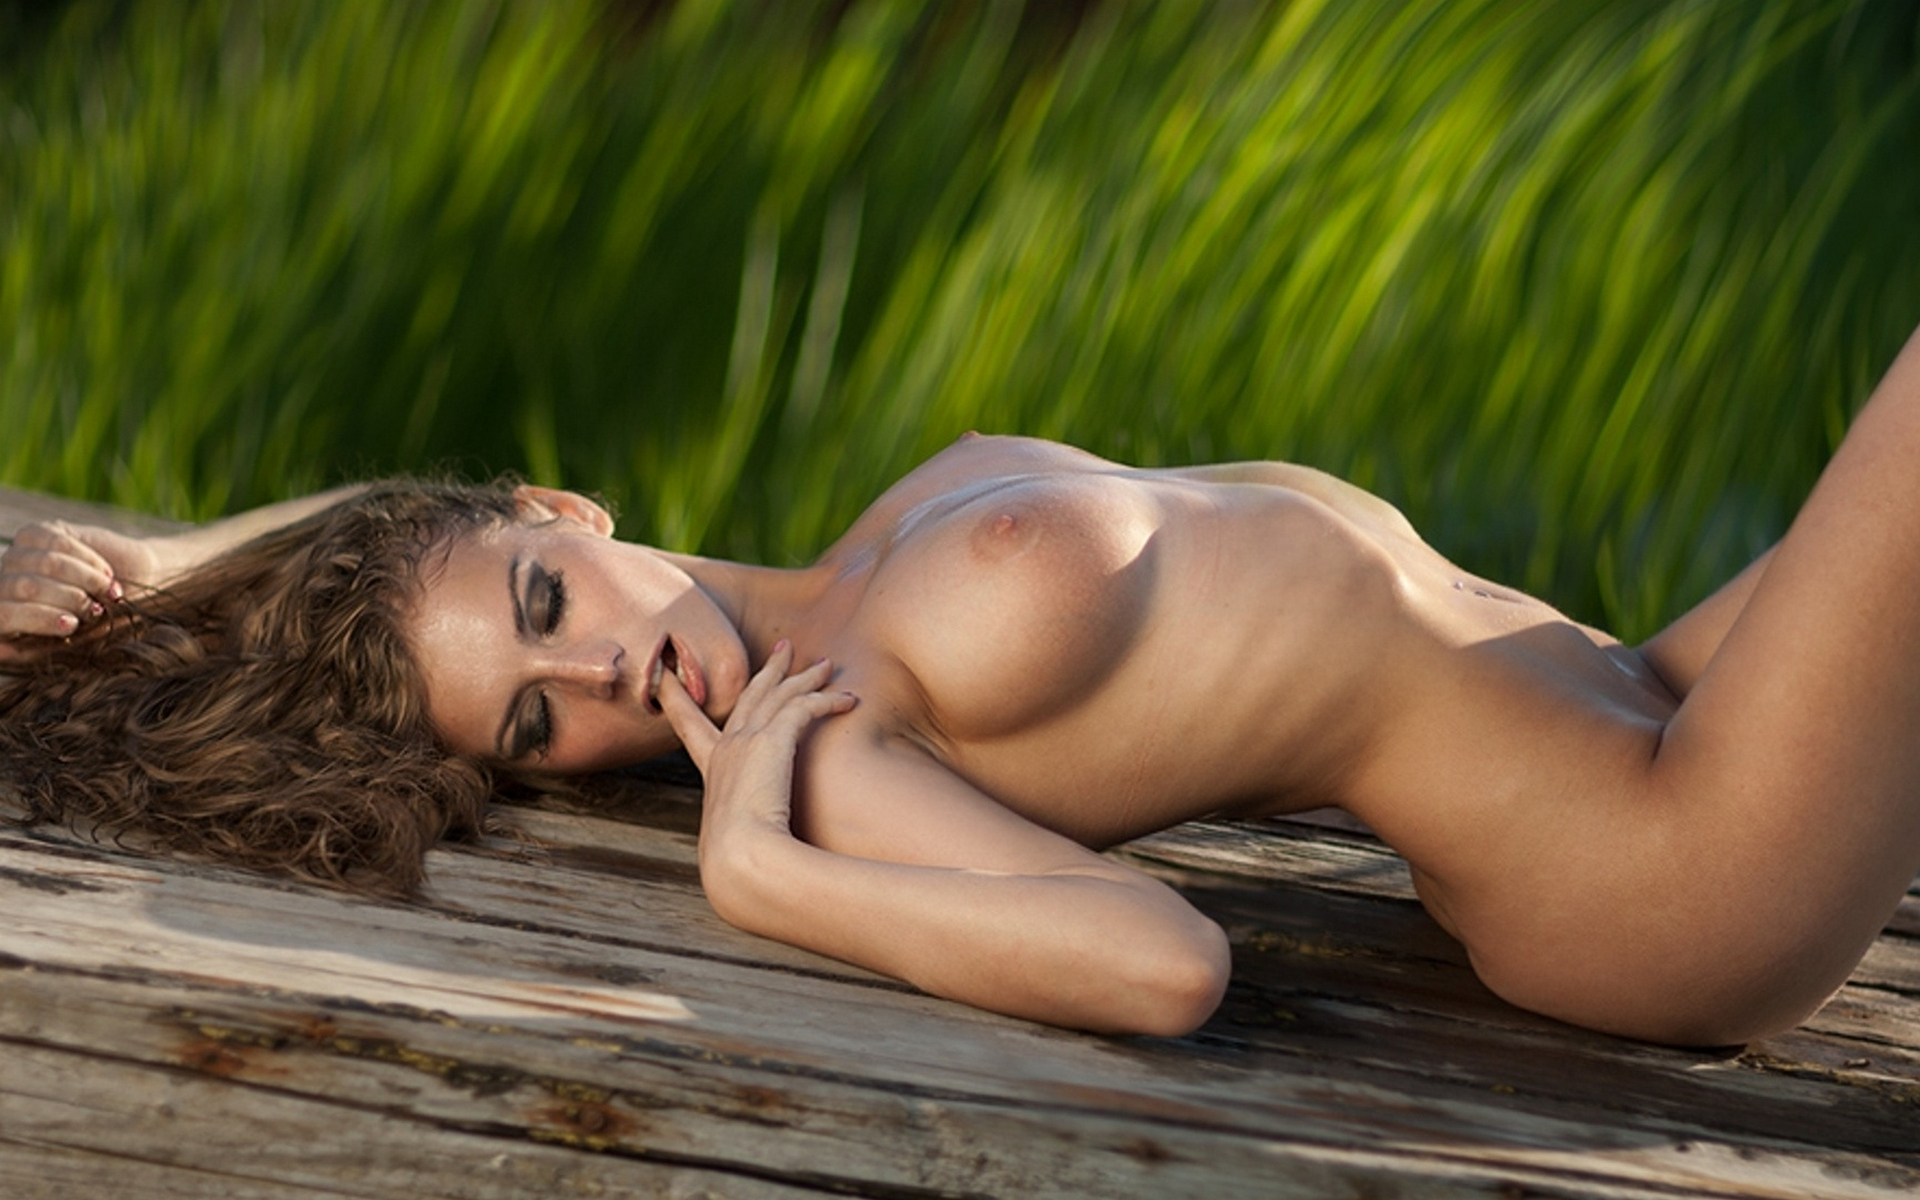 Full nude girls hd images